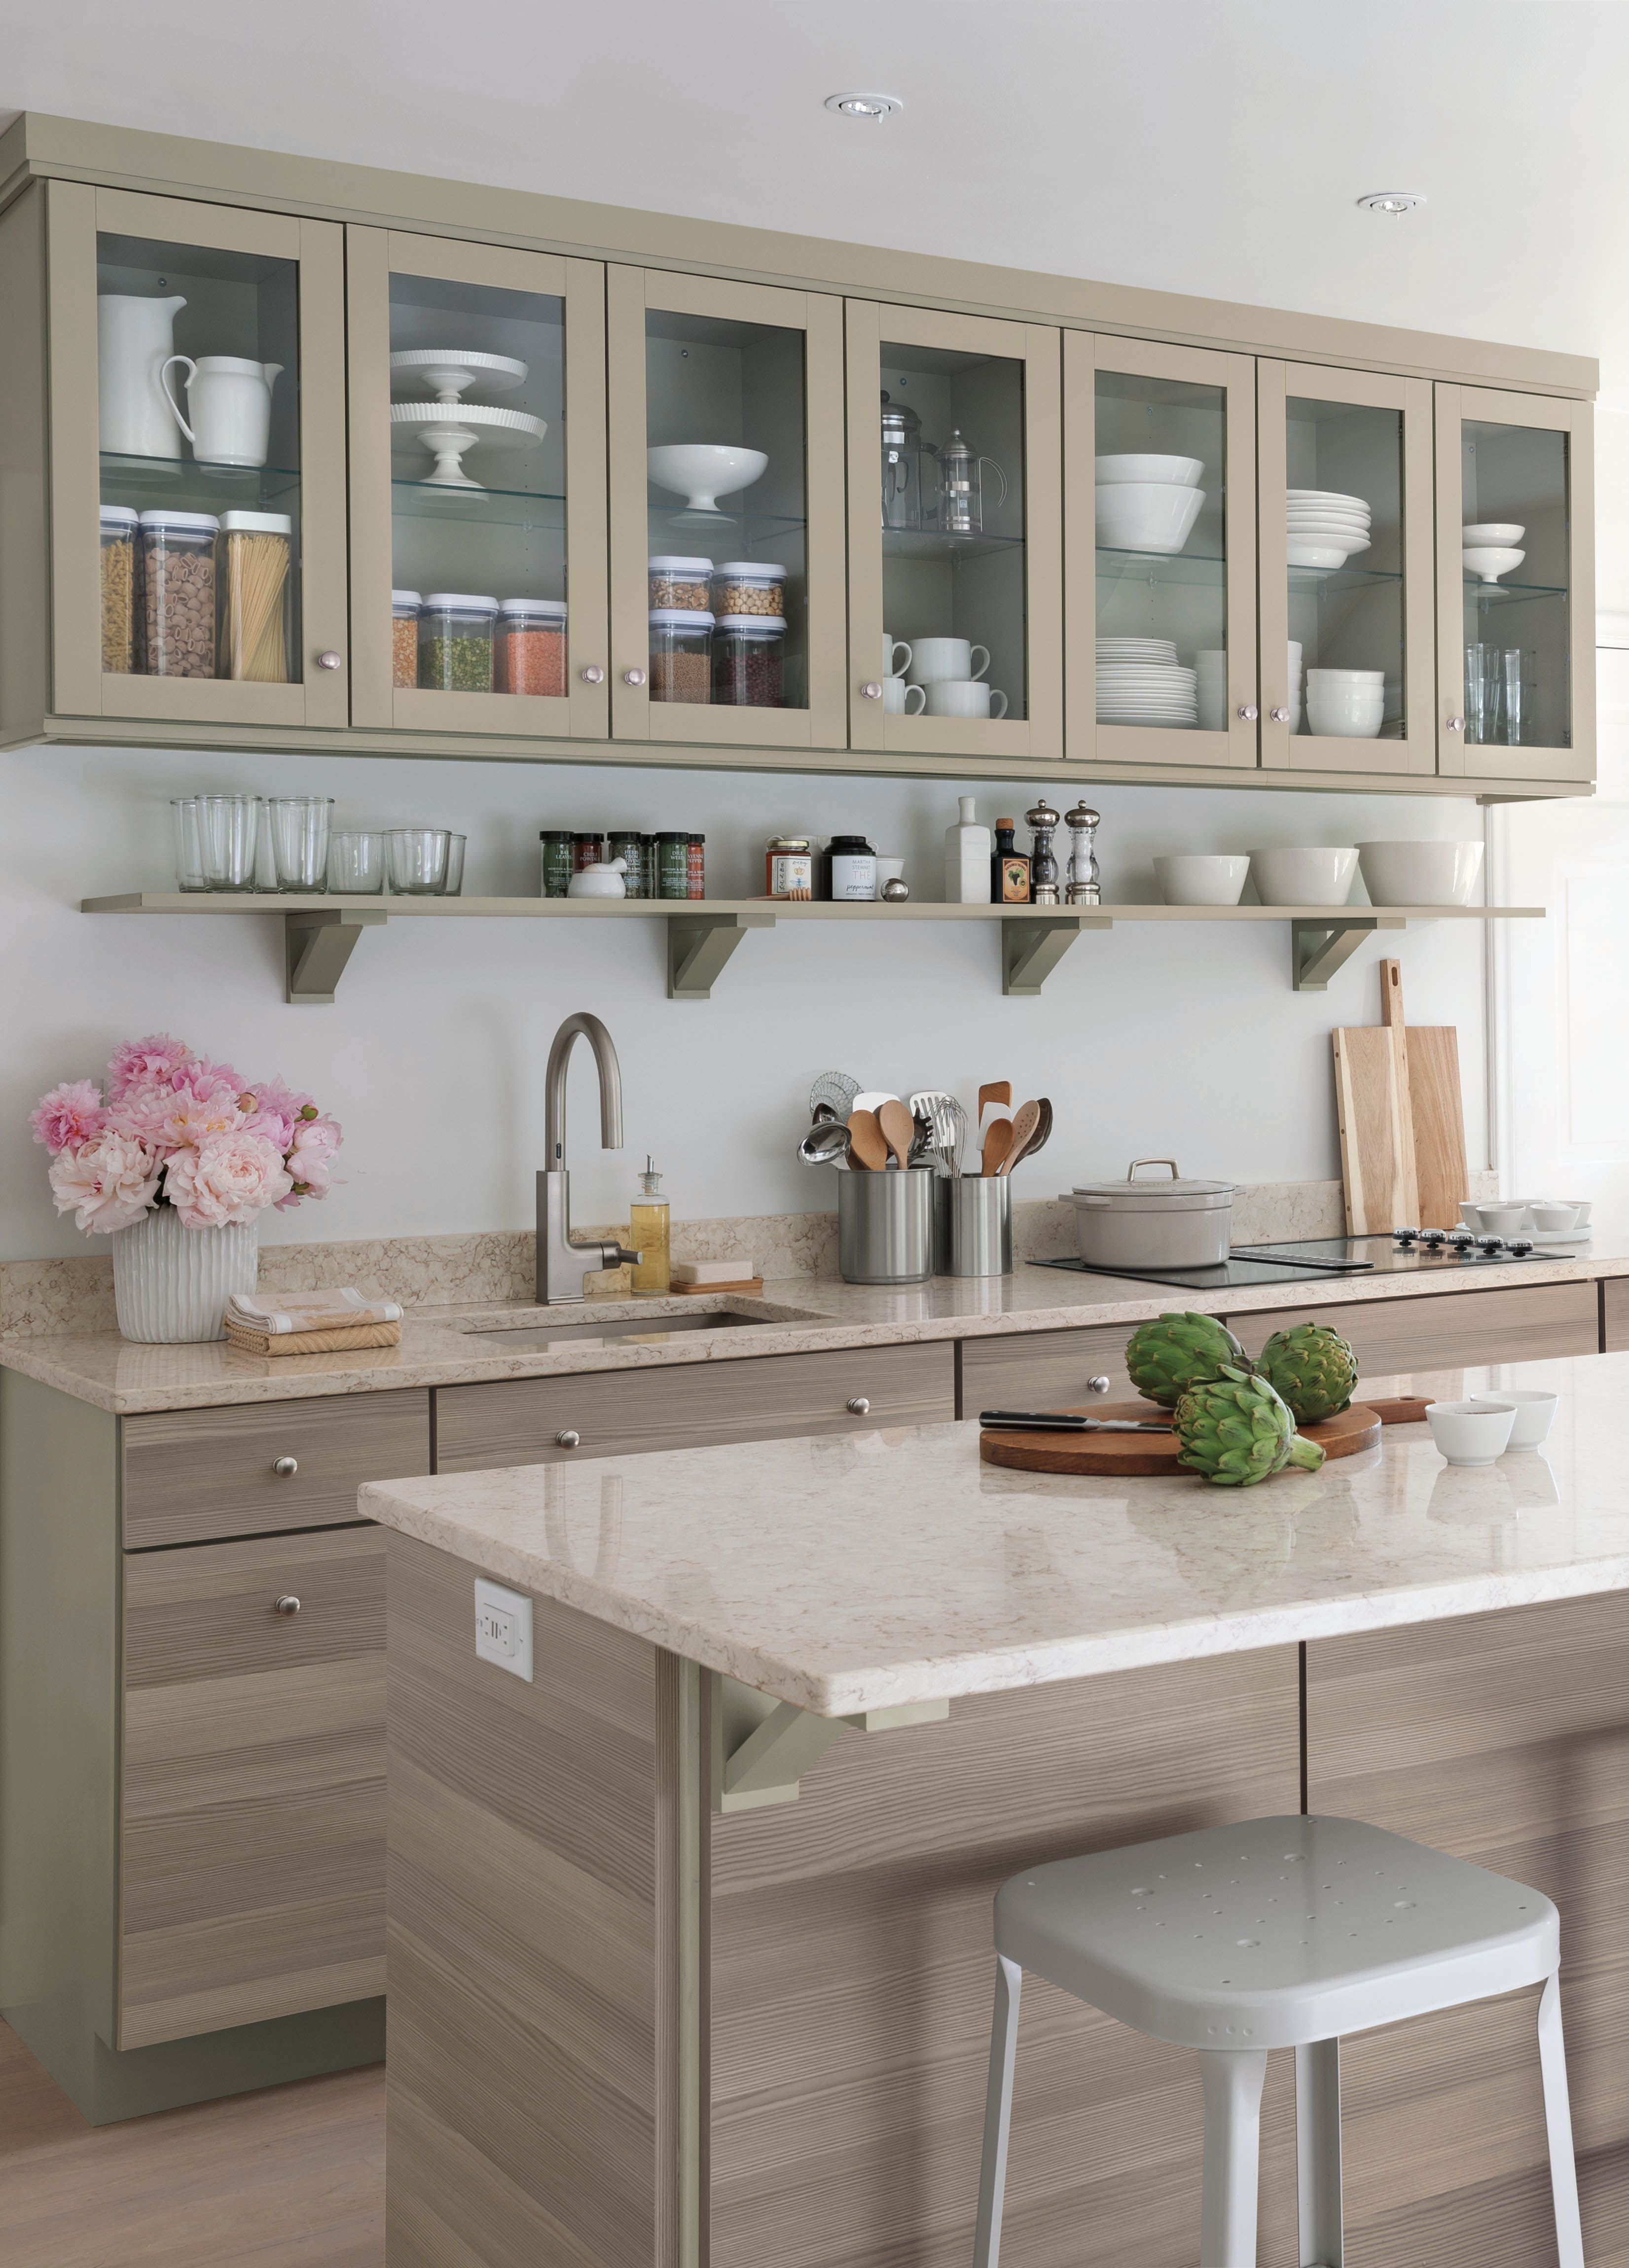 kitchen about martha you and organization wanted pin design stewart know in one cabinets everything to place